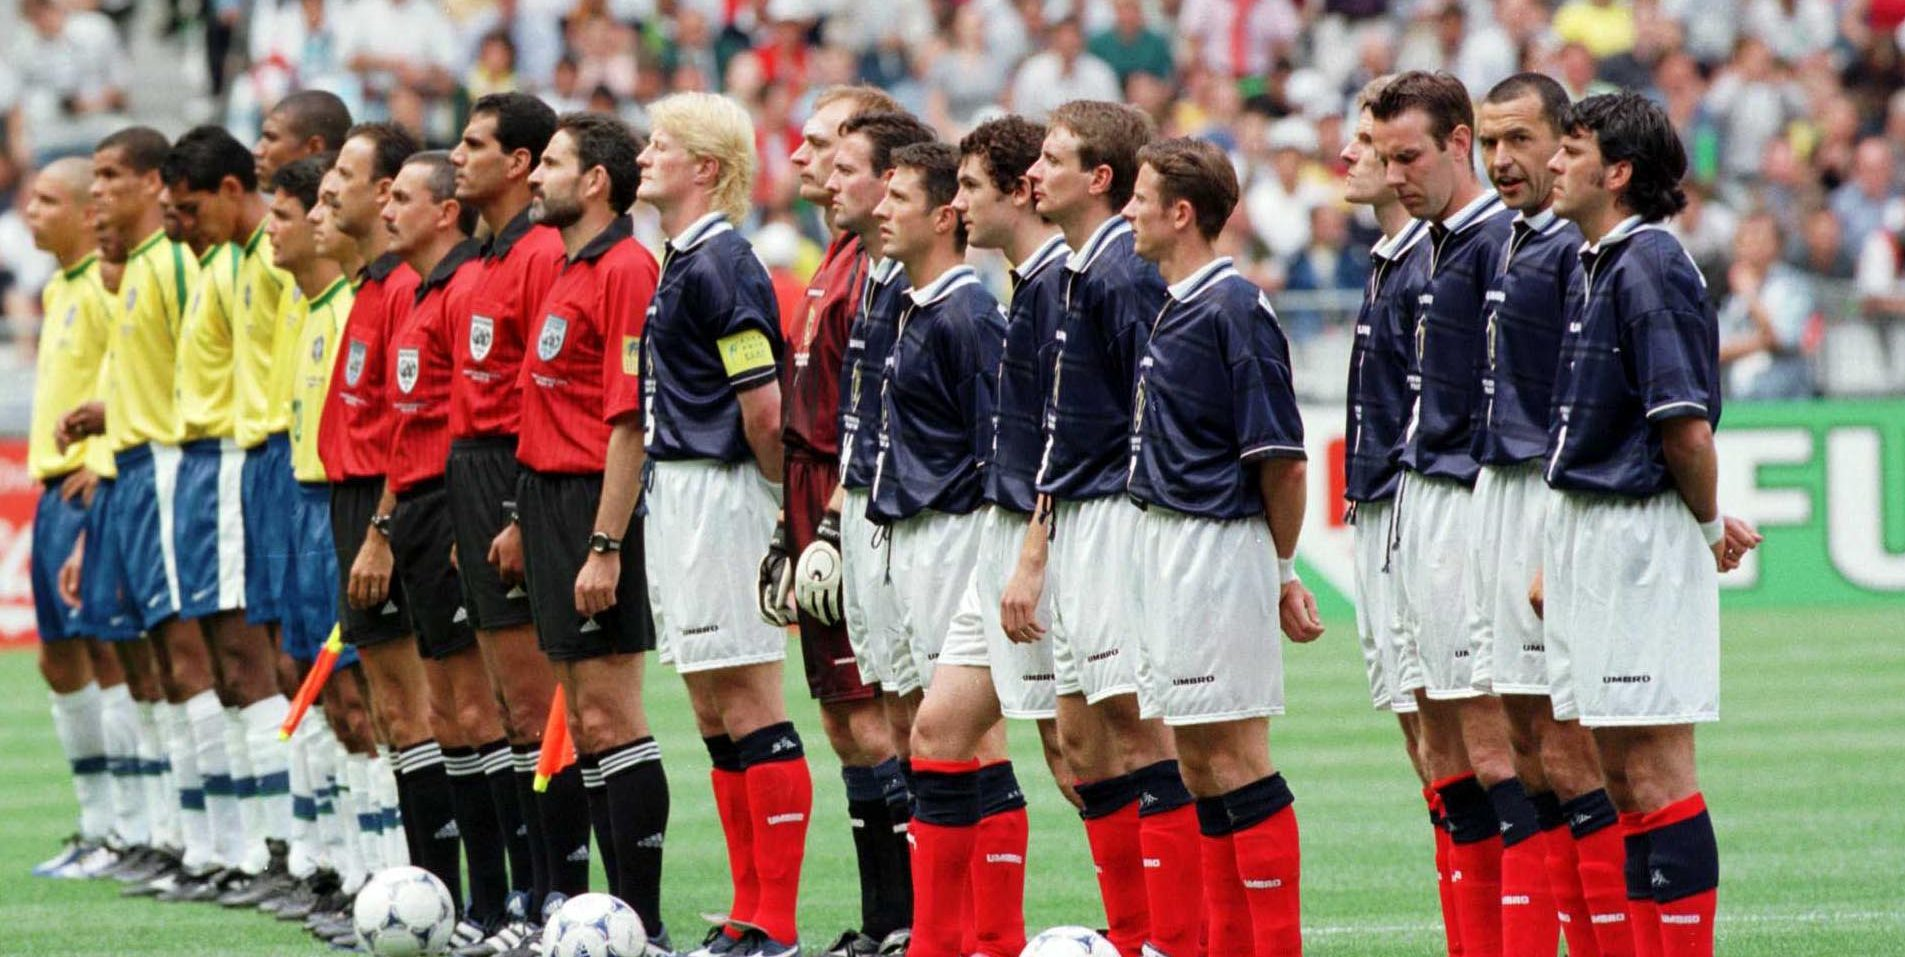 Scotland and Brazil line up before they play in the opening game of the 1998 World Cup - the last time Scotland qualified for a major finals